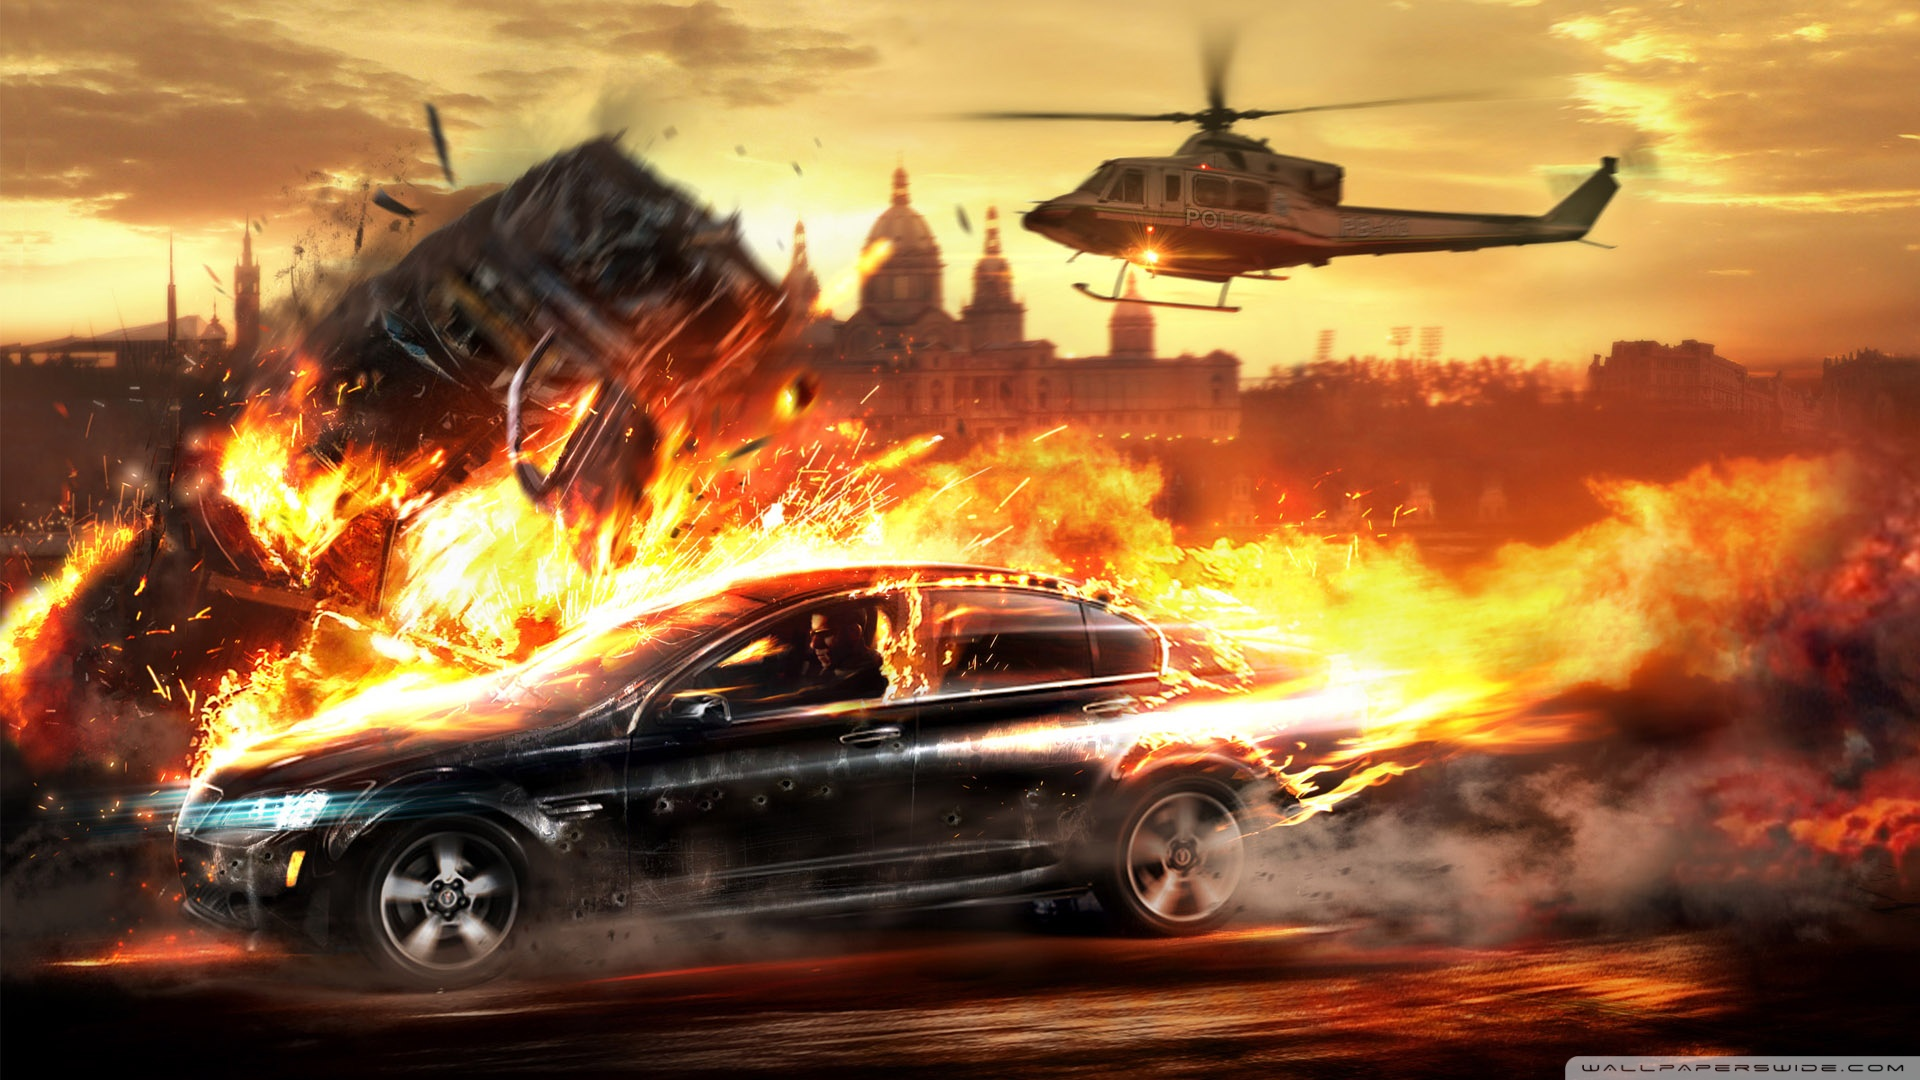 Car On Fire Wallpaper